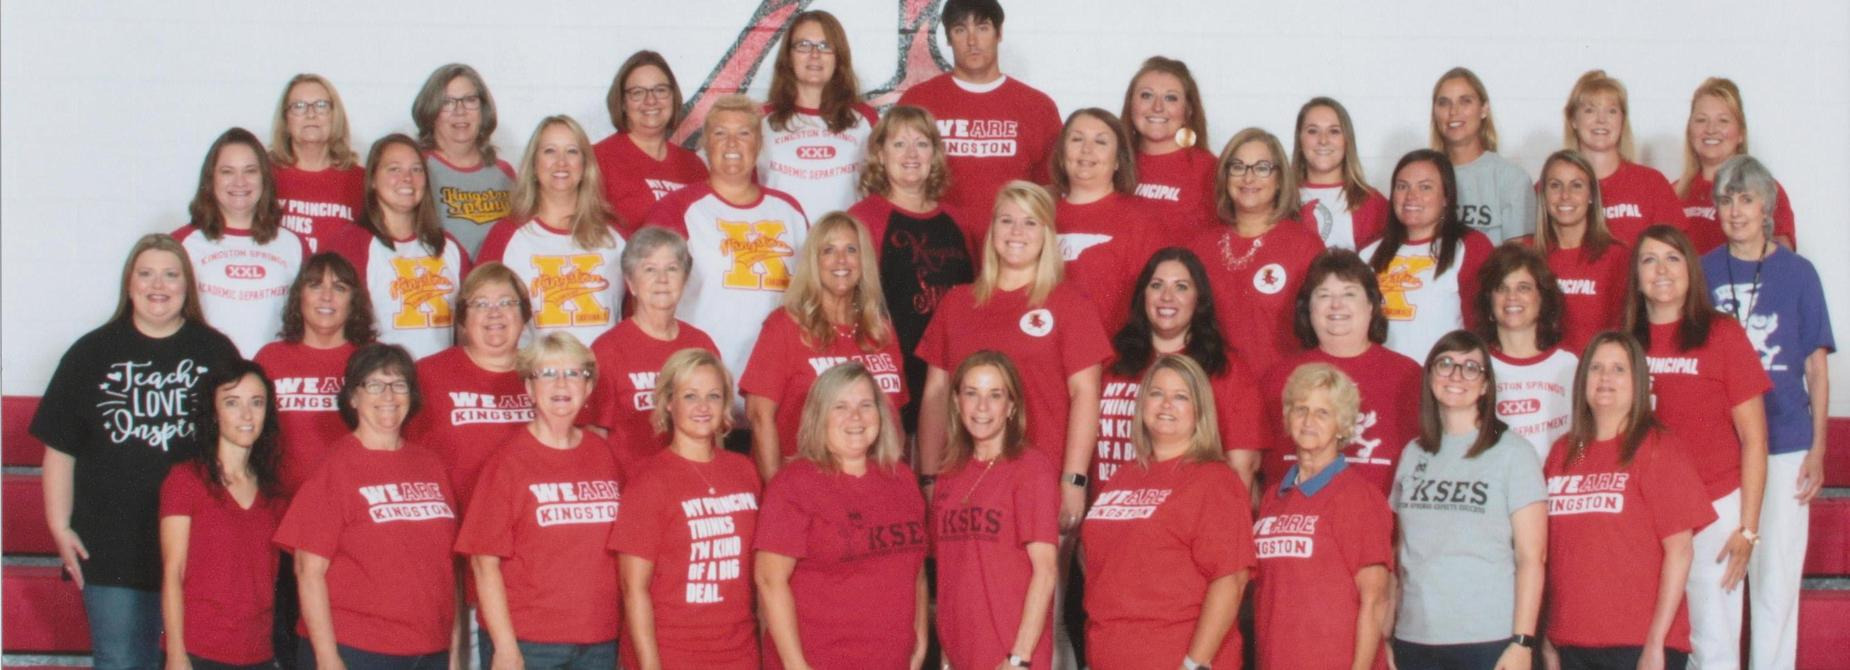 Kingston Springs Elementary School Staff